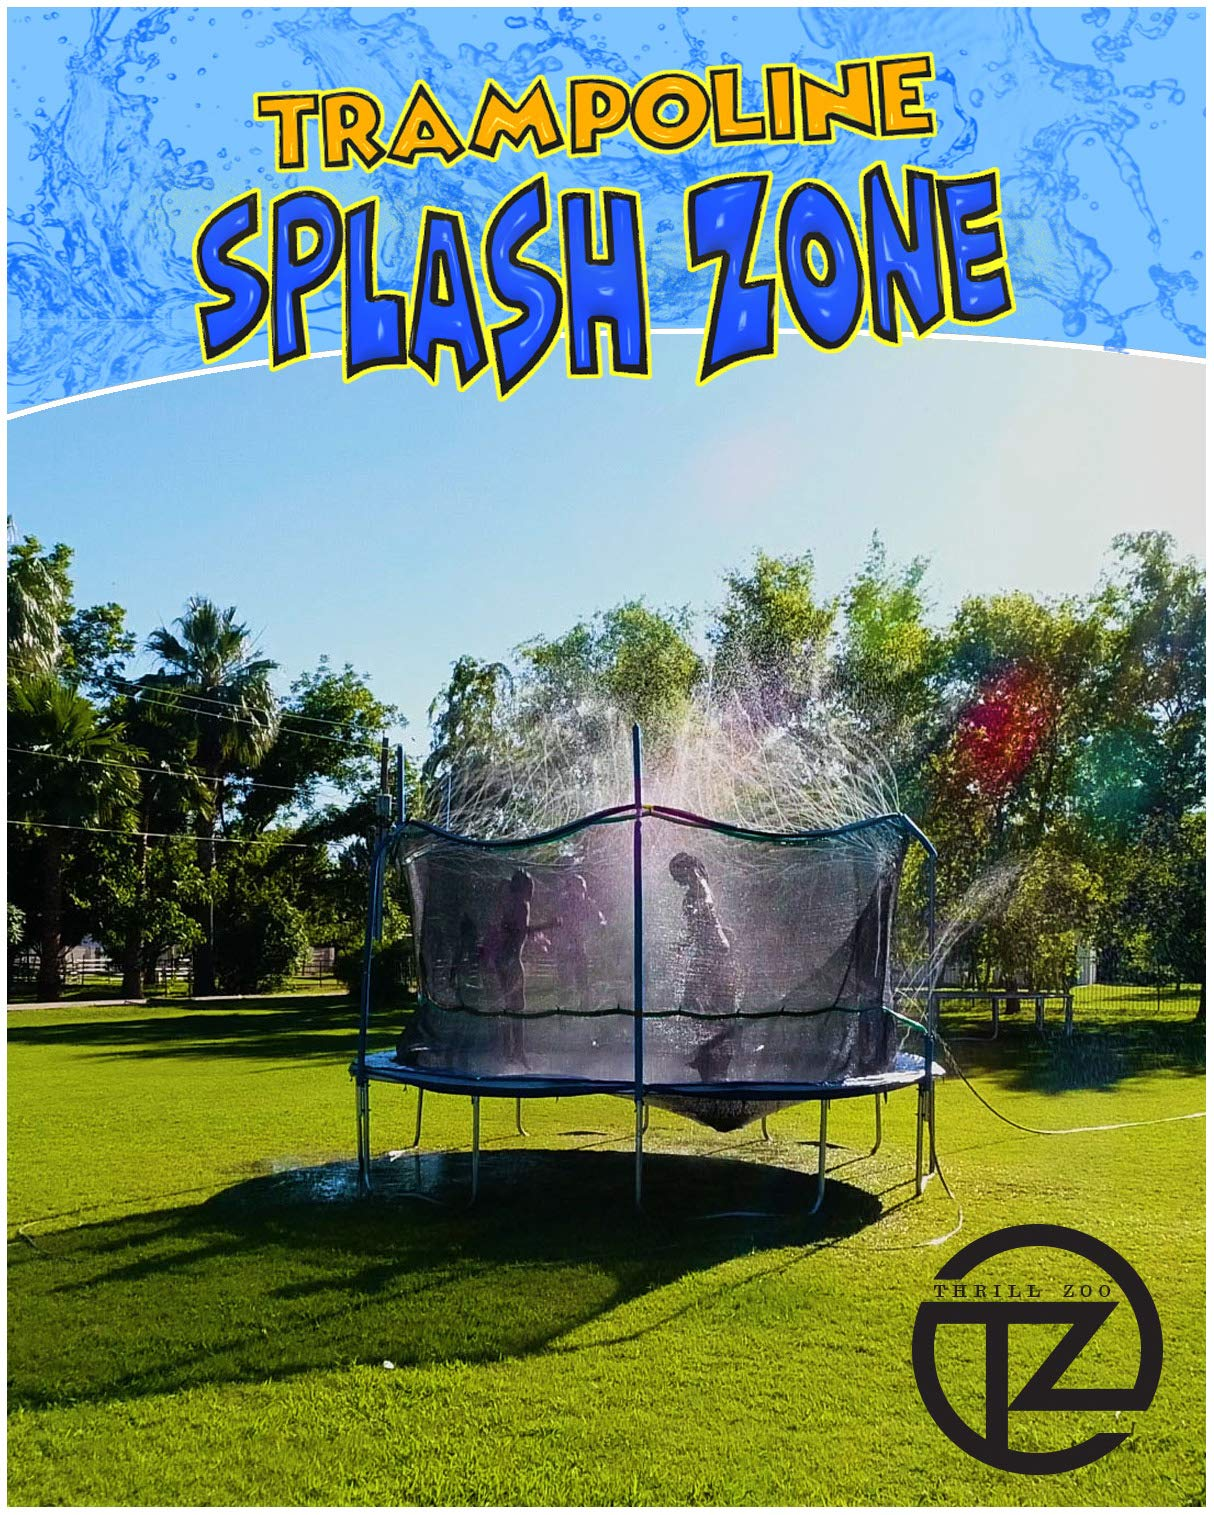 ThrillZoo Trampoline SplashZone - Kids Fun Summer Outdoor Water Park Game Sprinkler - Waterpark Toys for Boys Girls and Adults - Accessories Included - Toy Attaches on Safety Net Enclosure by ThrillZoo